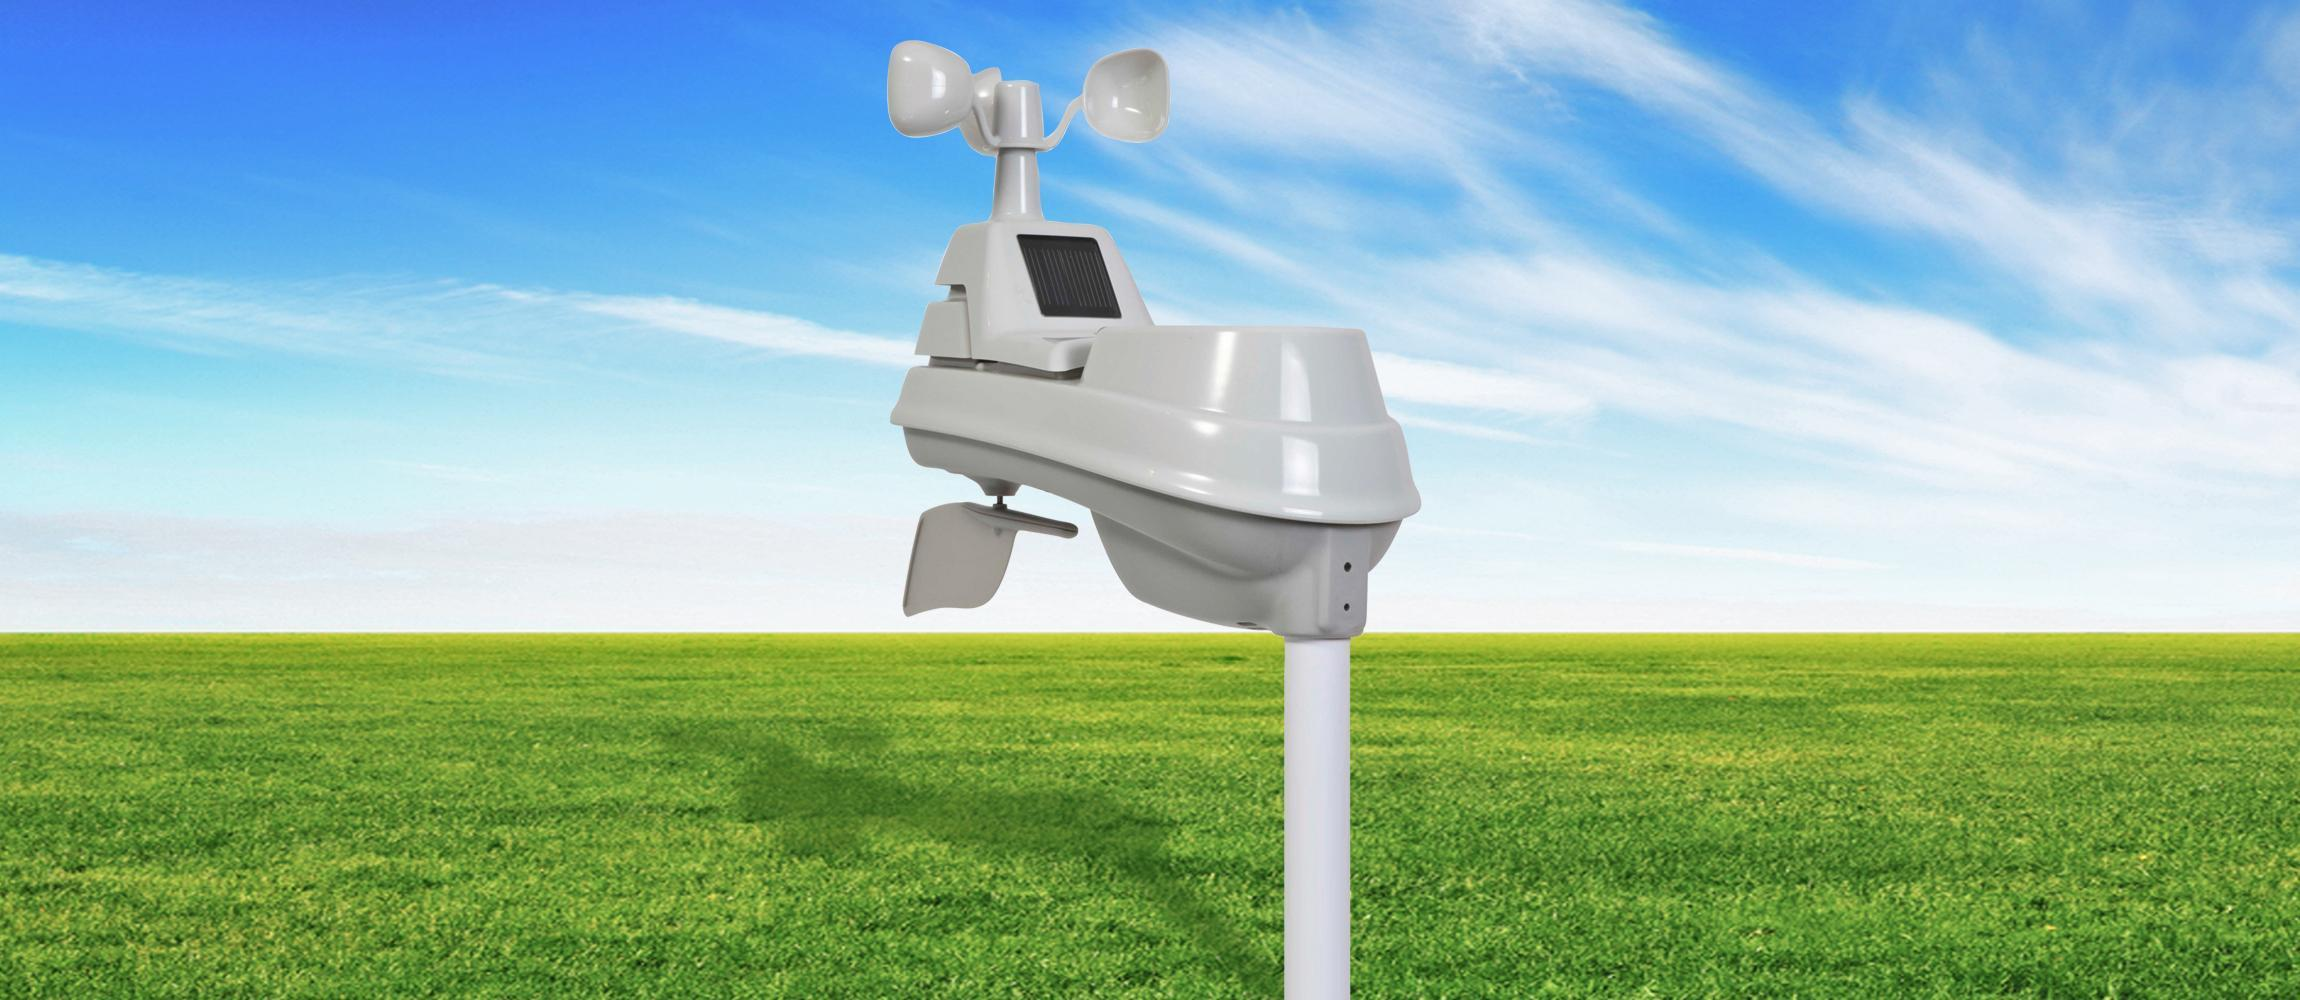 Amazon.com: AcuRite 02064M Pro Color Weather Station with ...